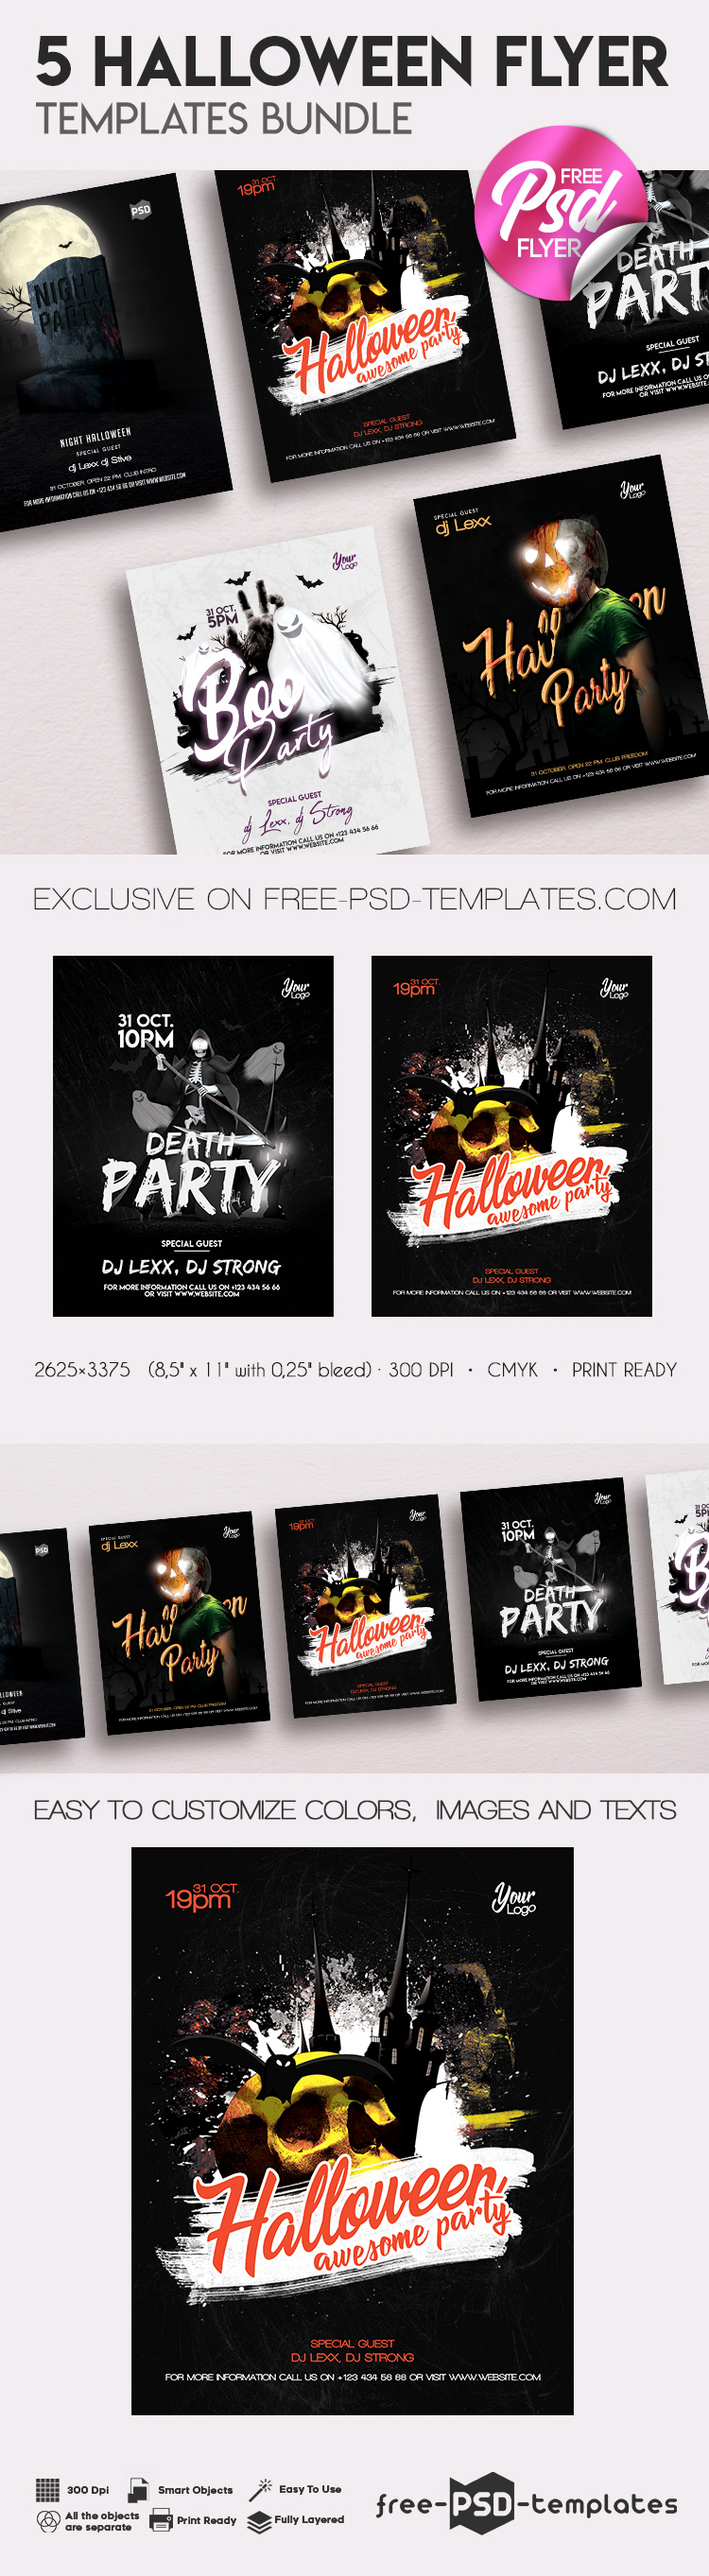 5 Free Halloween Flyer Templates Bundle In Psd Free Psd Templates